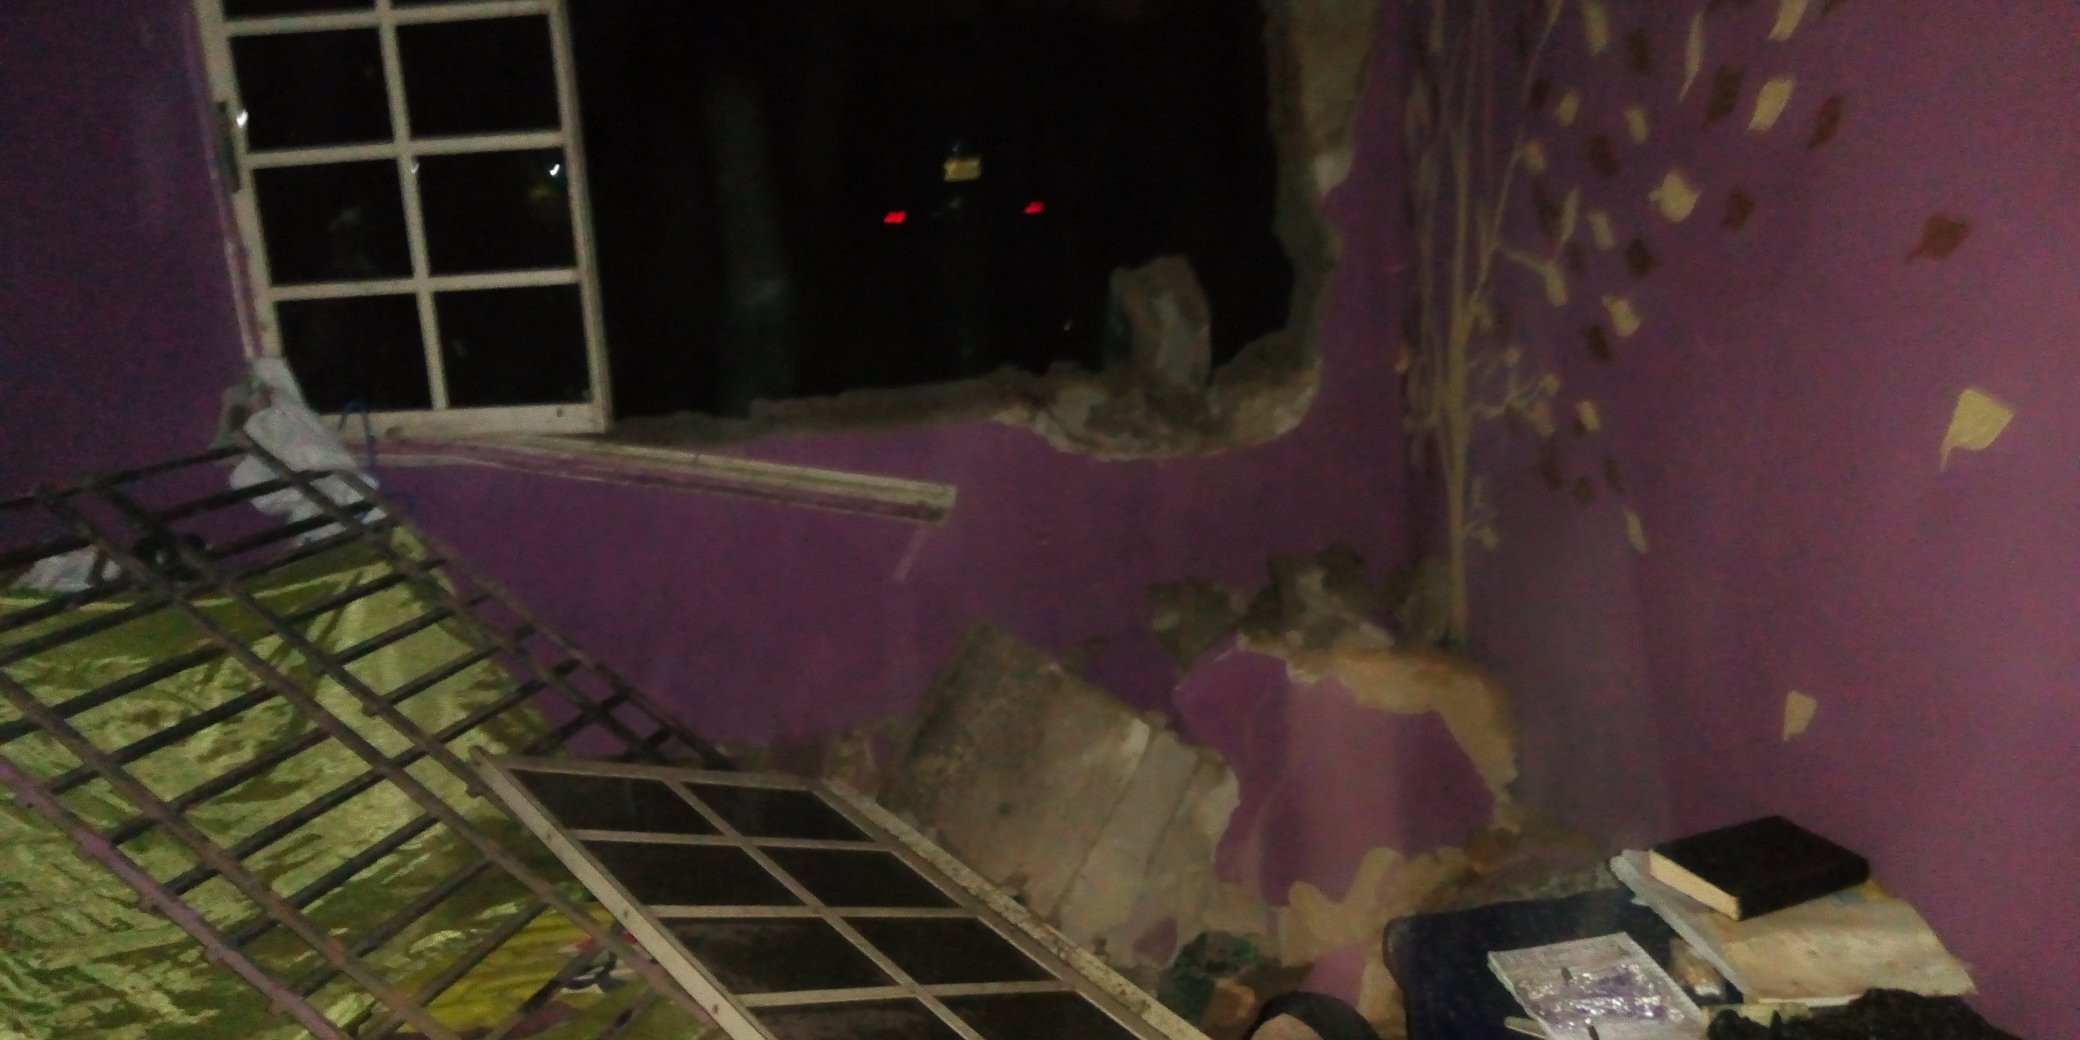 Woman escapes unharmed after heavy wind blew off her windows and wall at night, All9ja